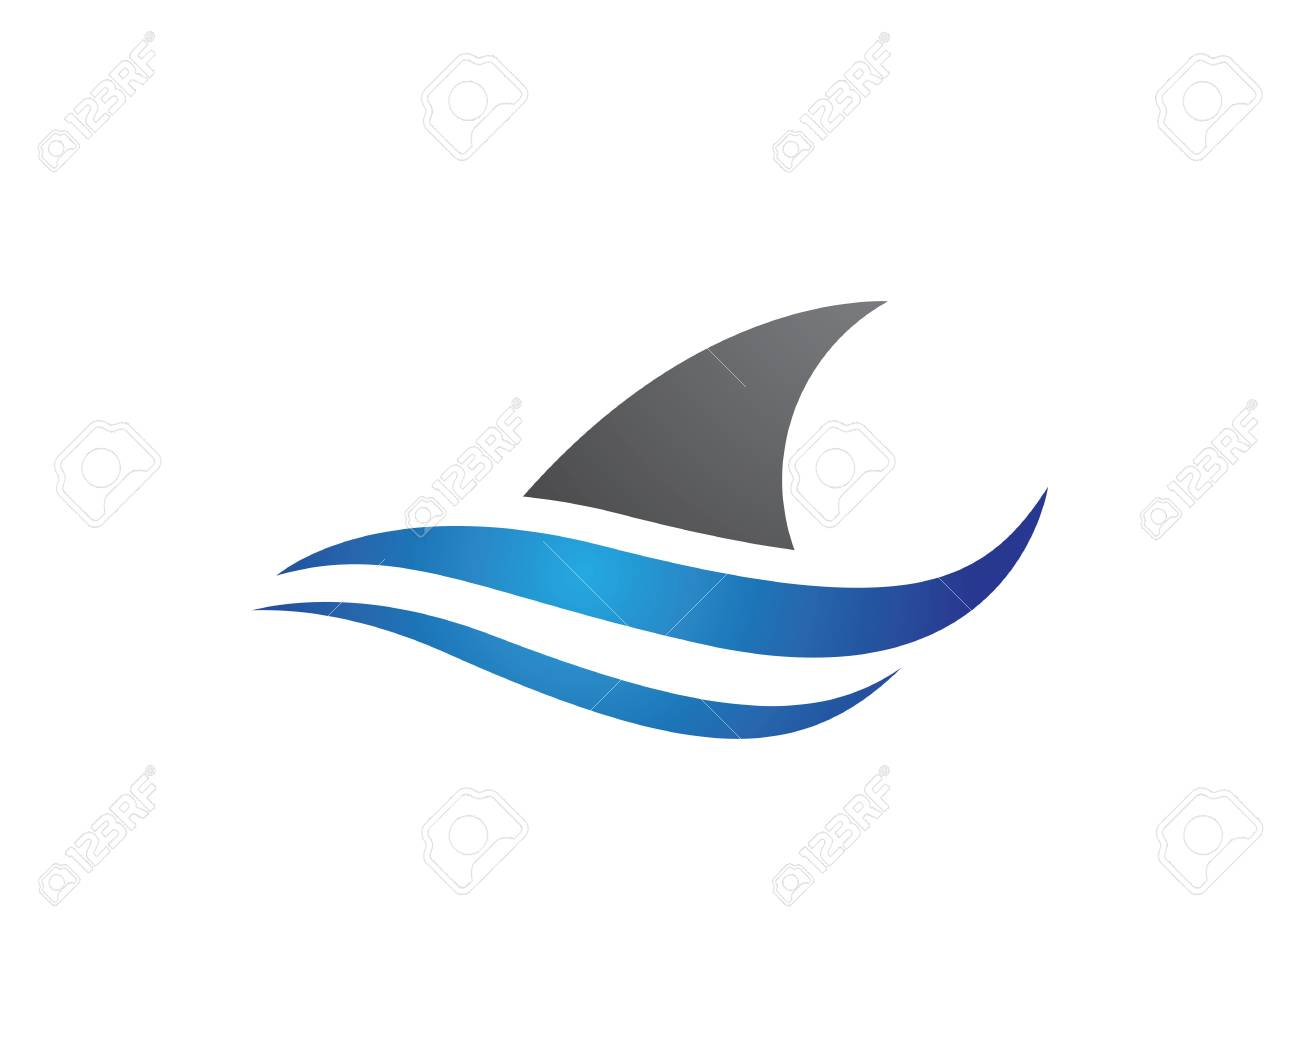 Shark Template Royalty Free Cliparts, Vectors, And Stock ...